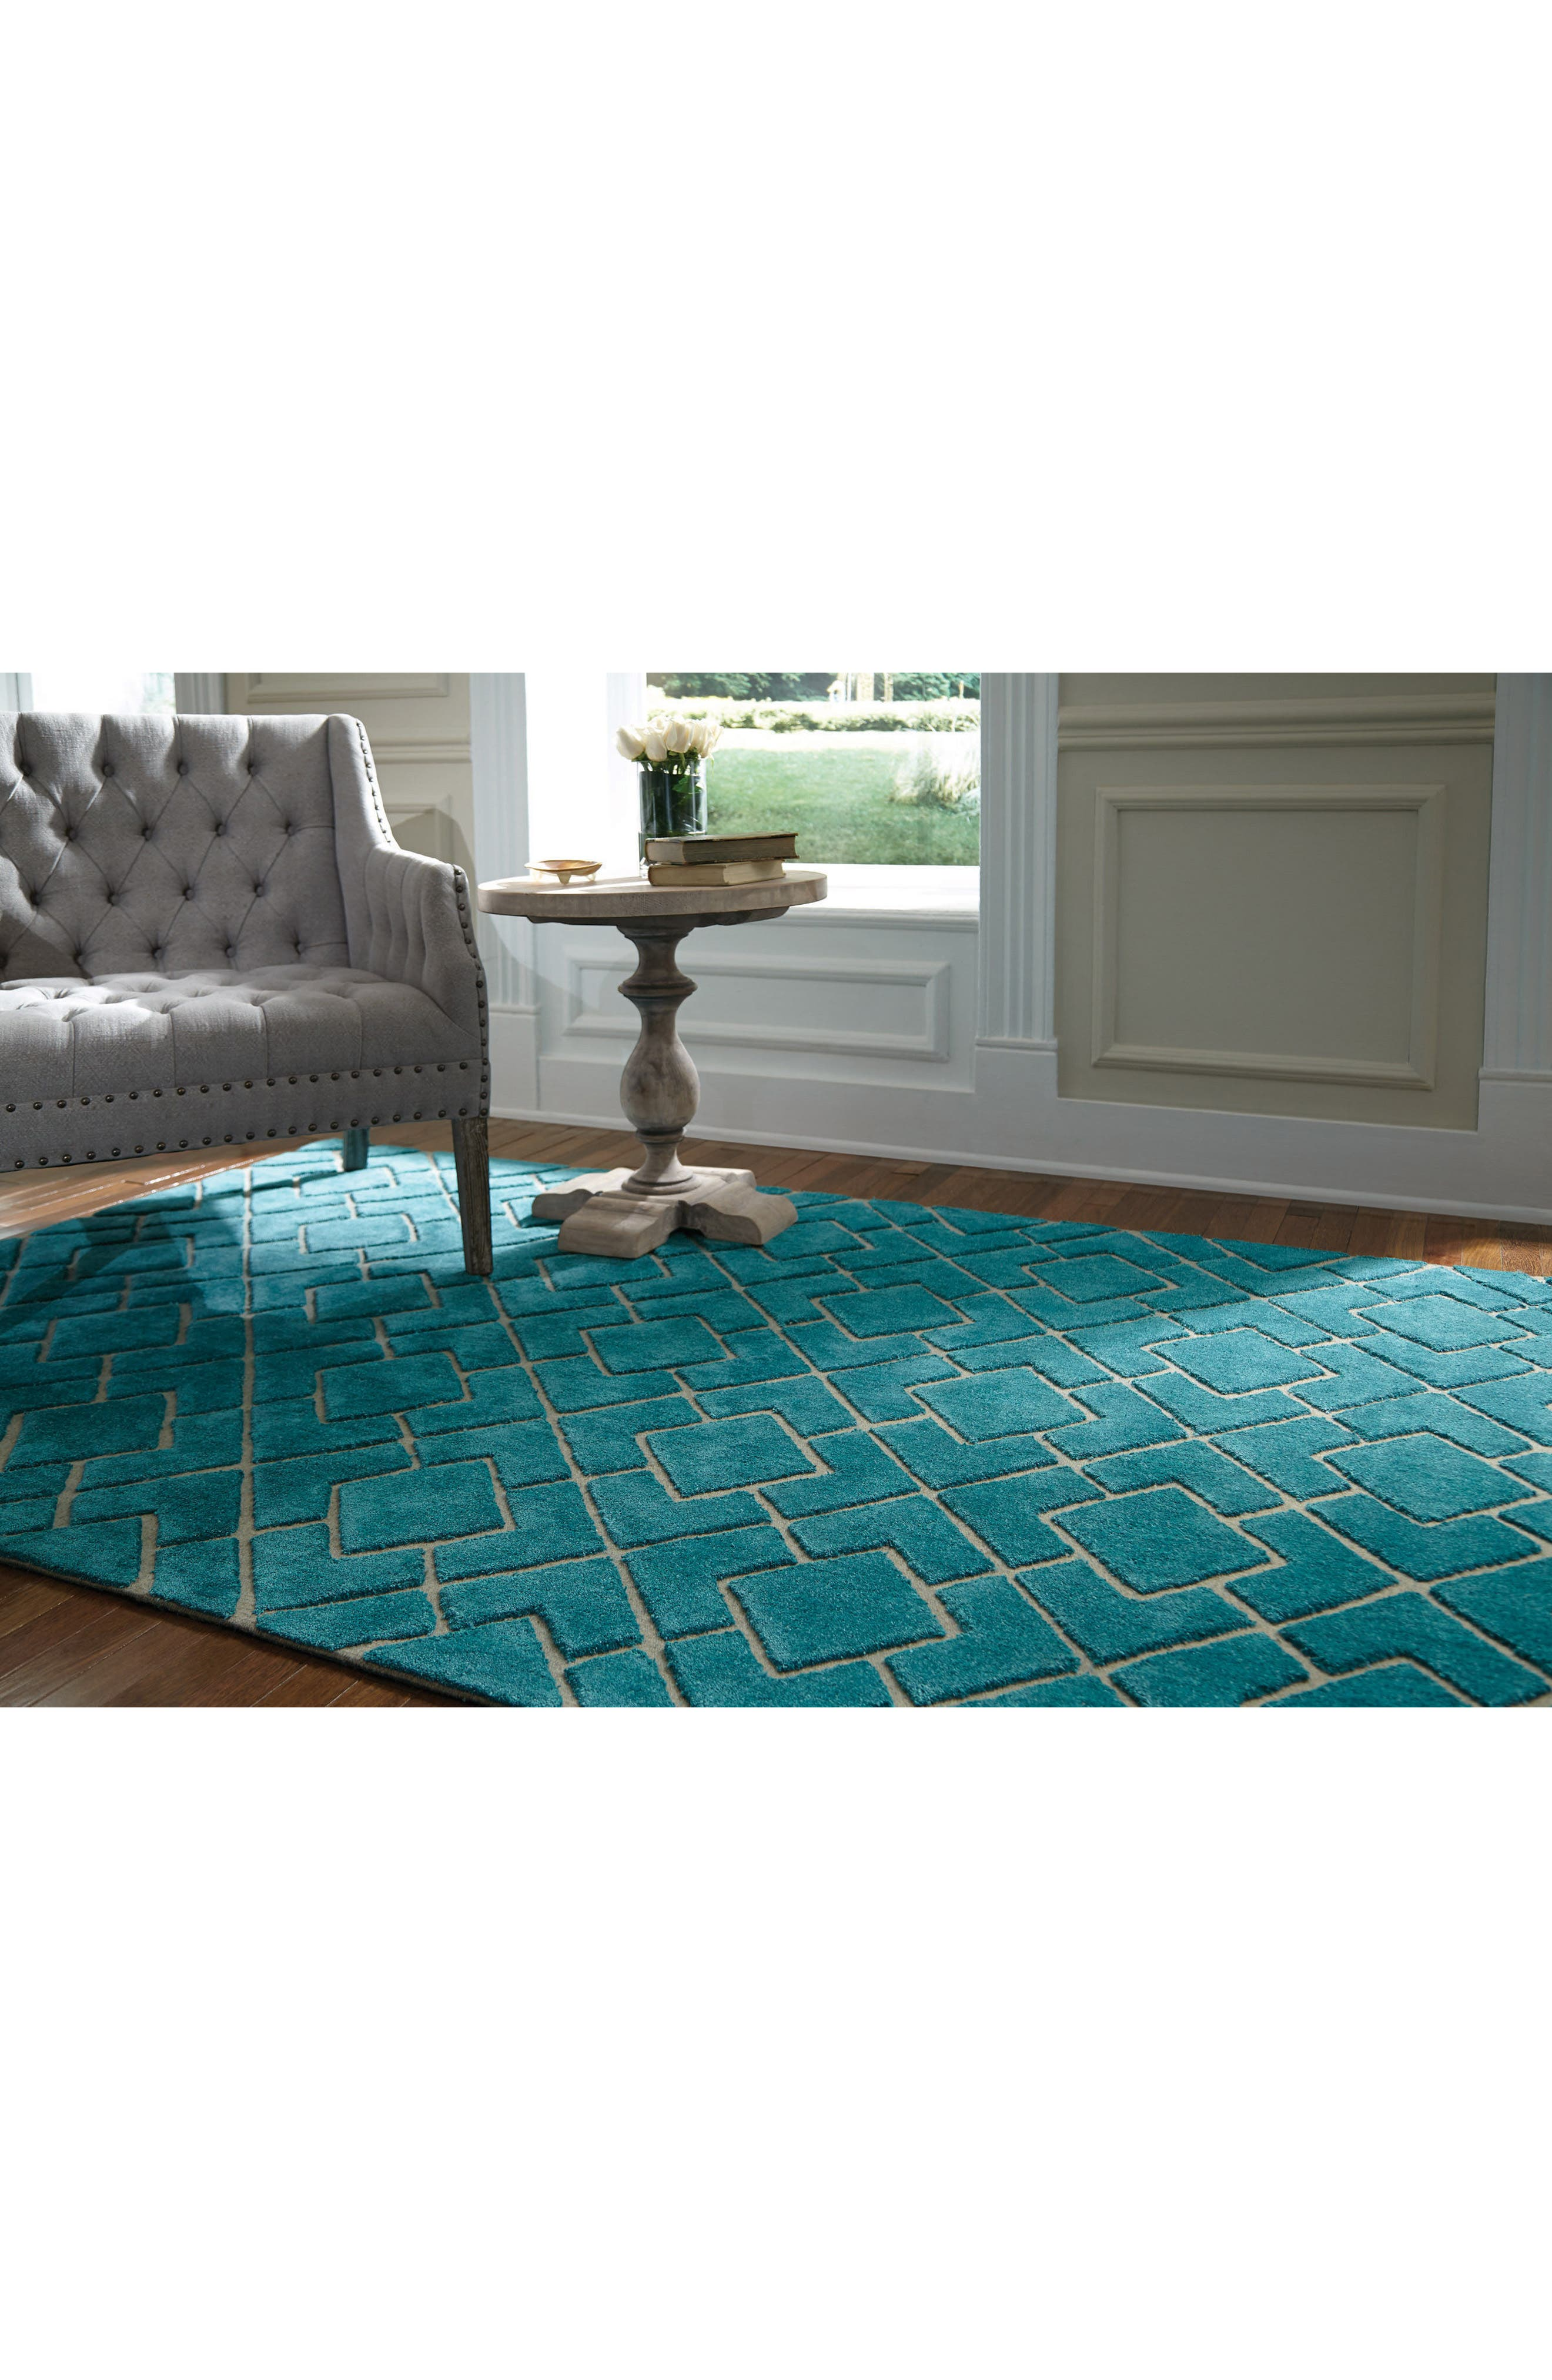 'Over Tufted - Turquoise' Rug,                             Alternate thumbnail 3, color,                             440